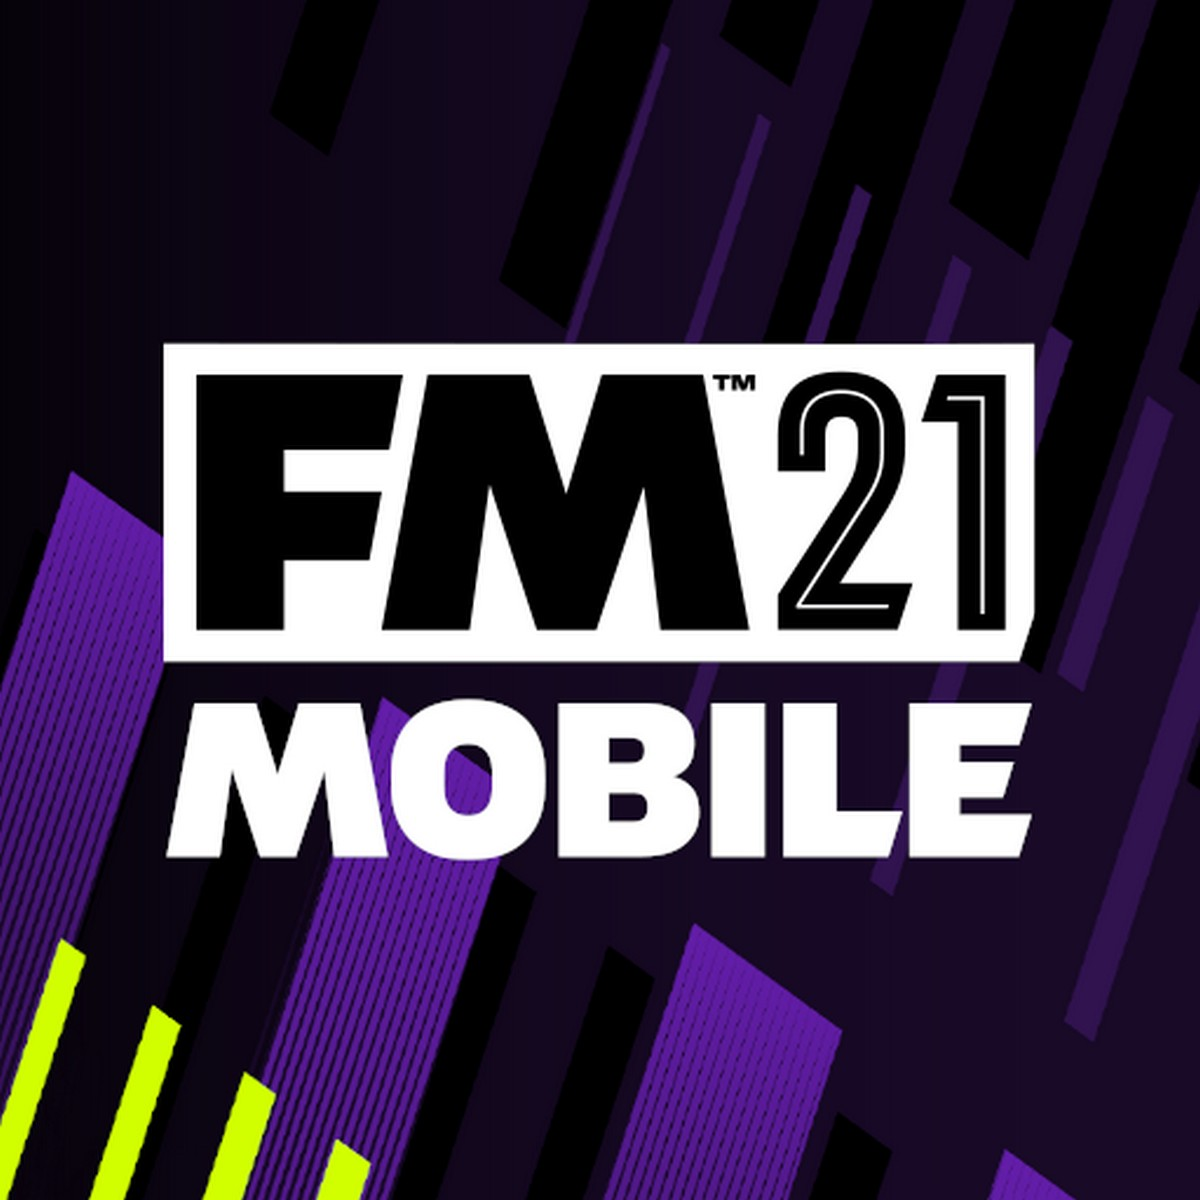 Football Manager 2021 Mobile APK MOD